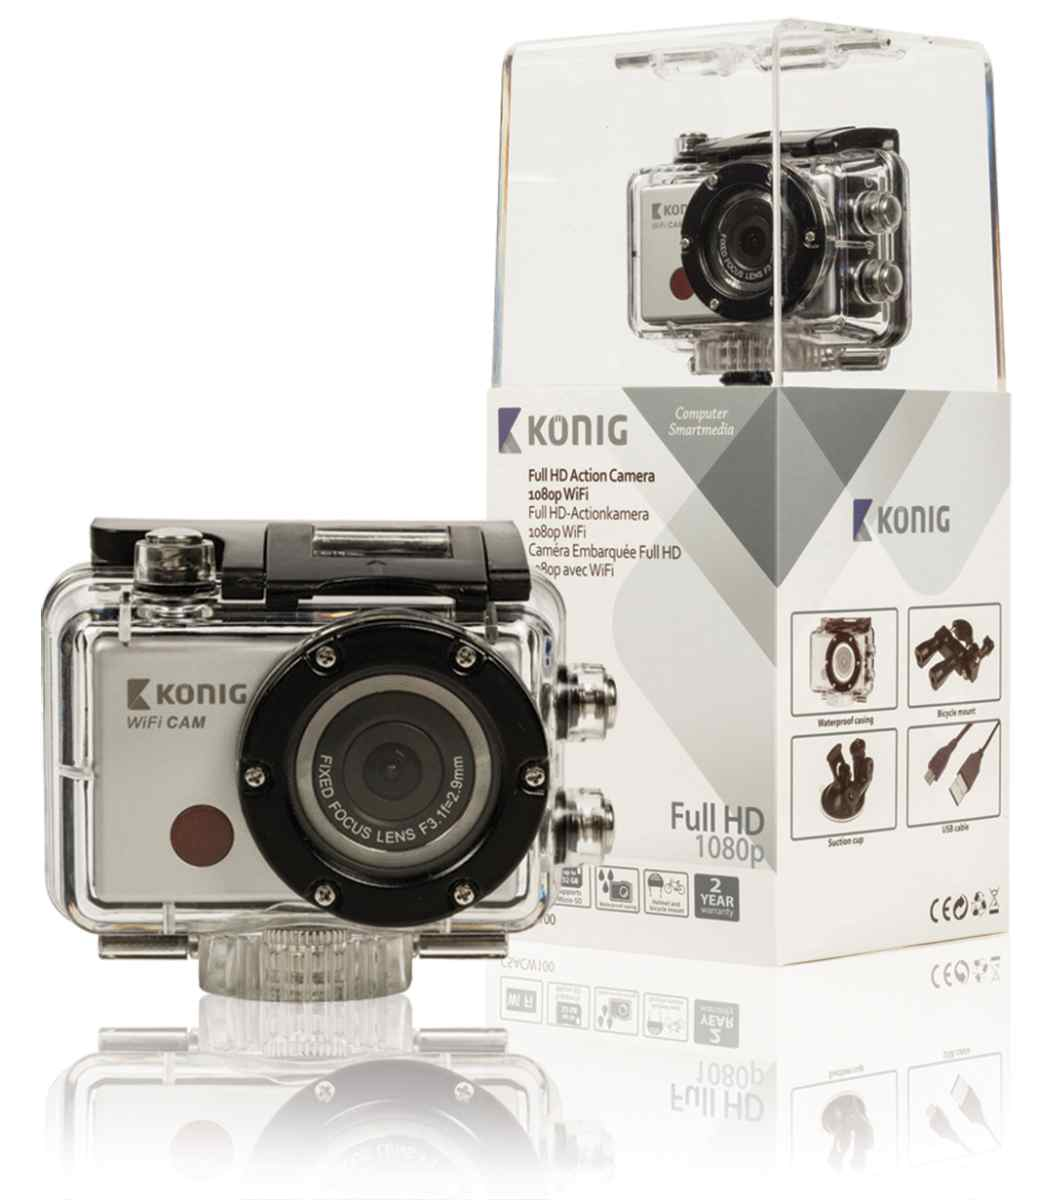 Koenig Full HD action camera 1080p waterproof WiFi